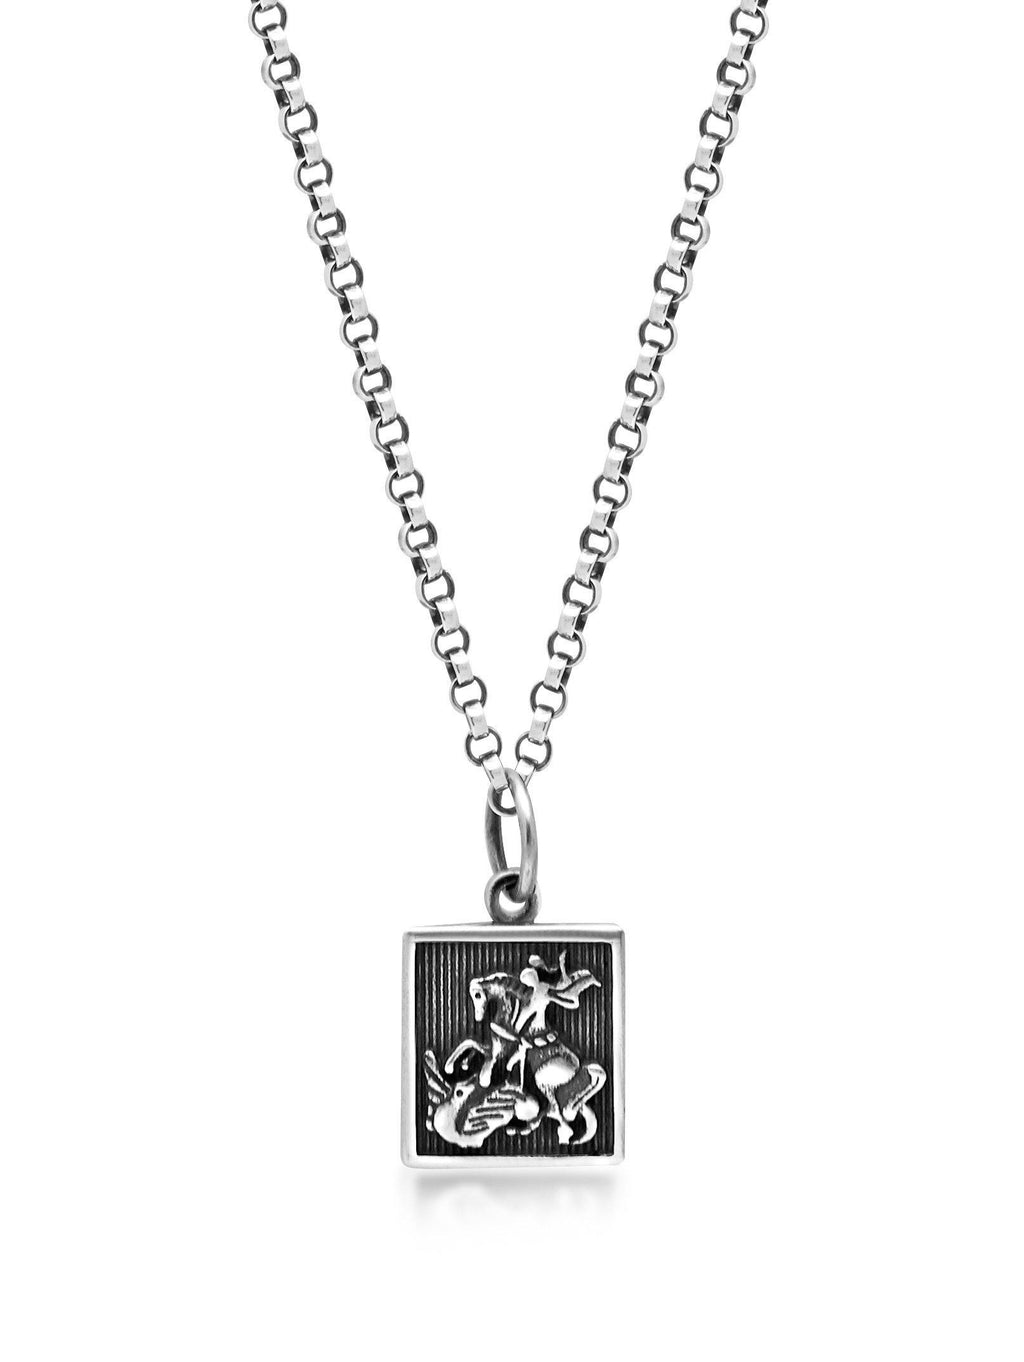 Men's Silver Necklace with Saint George and The Dragon Pendant